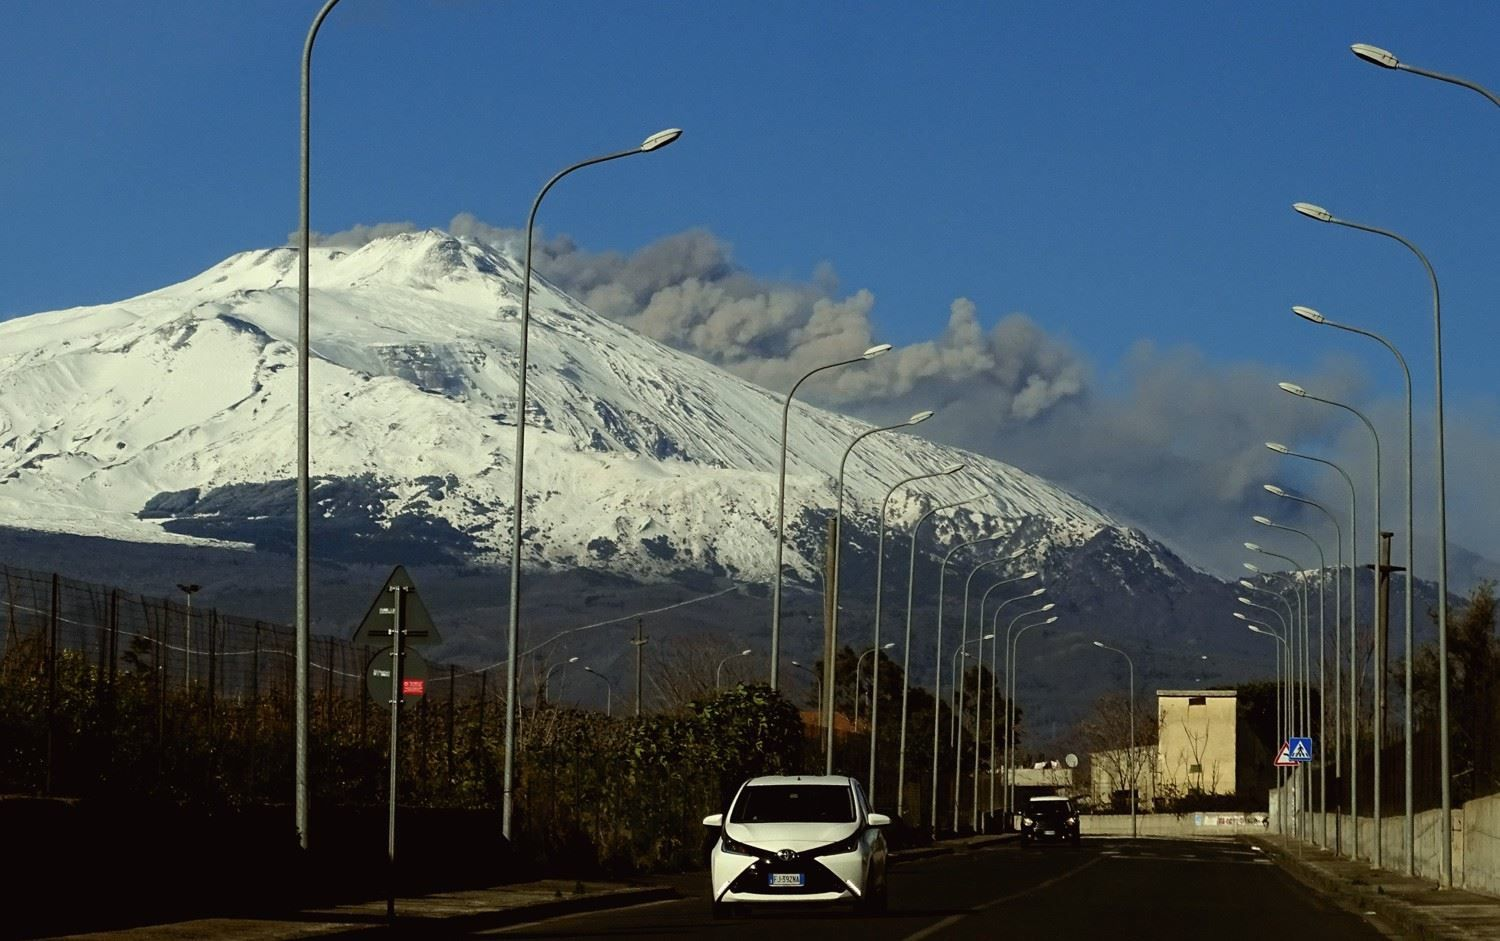 Etna - panache de cendres le 22.01.2019 - photo Boris Behncke